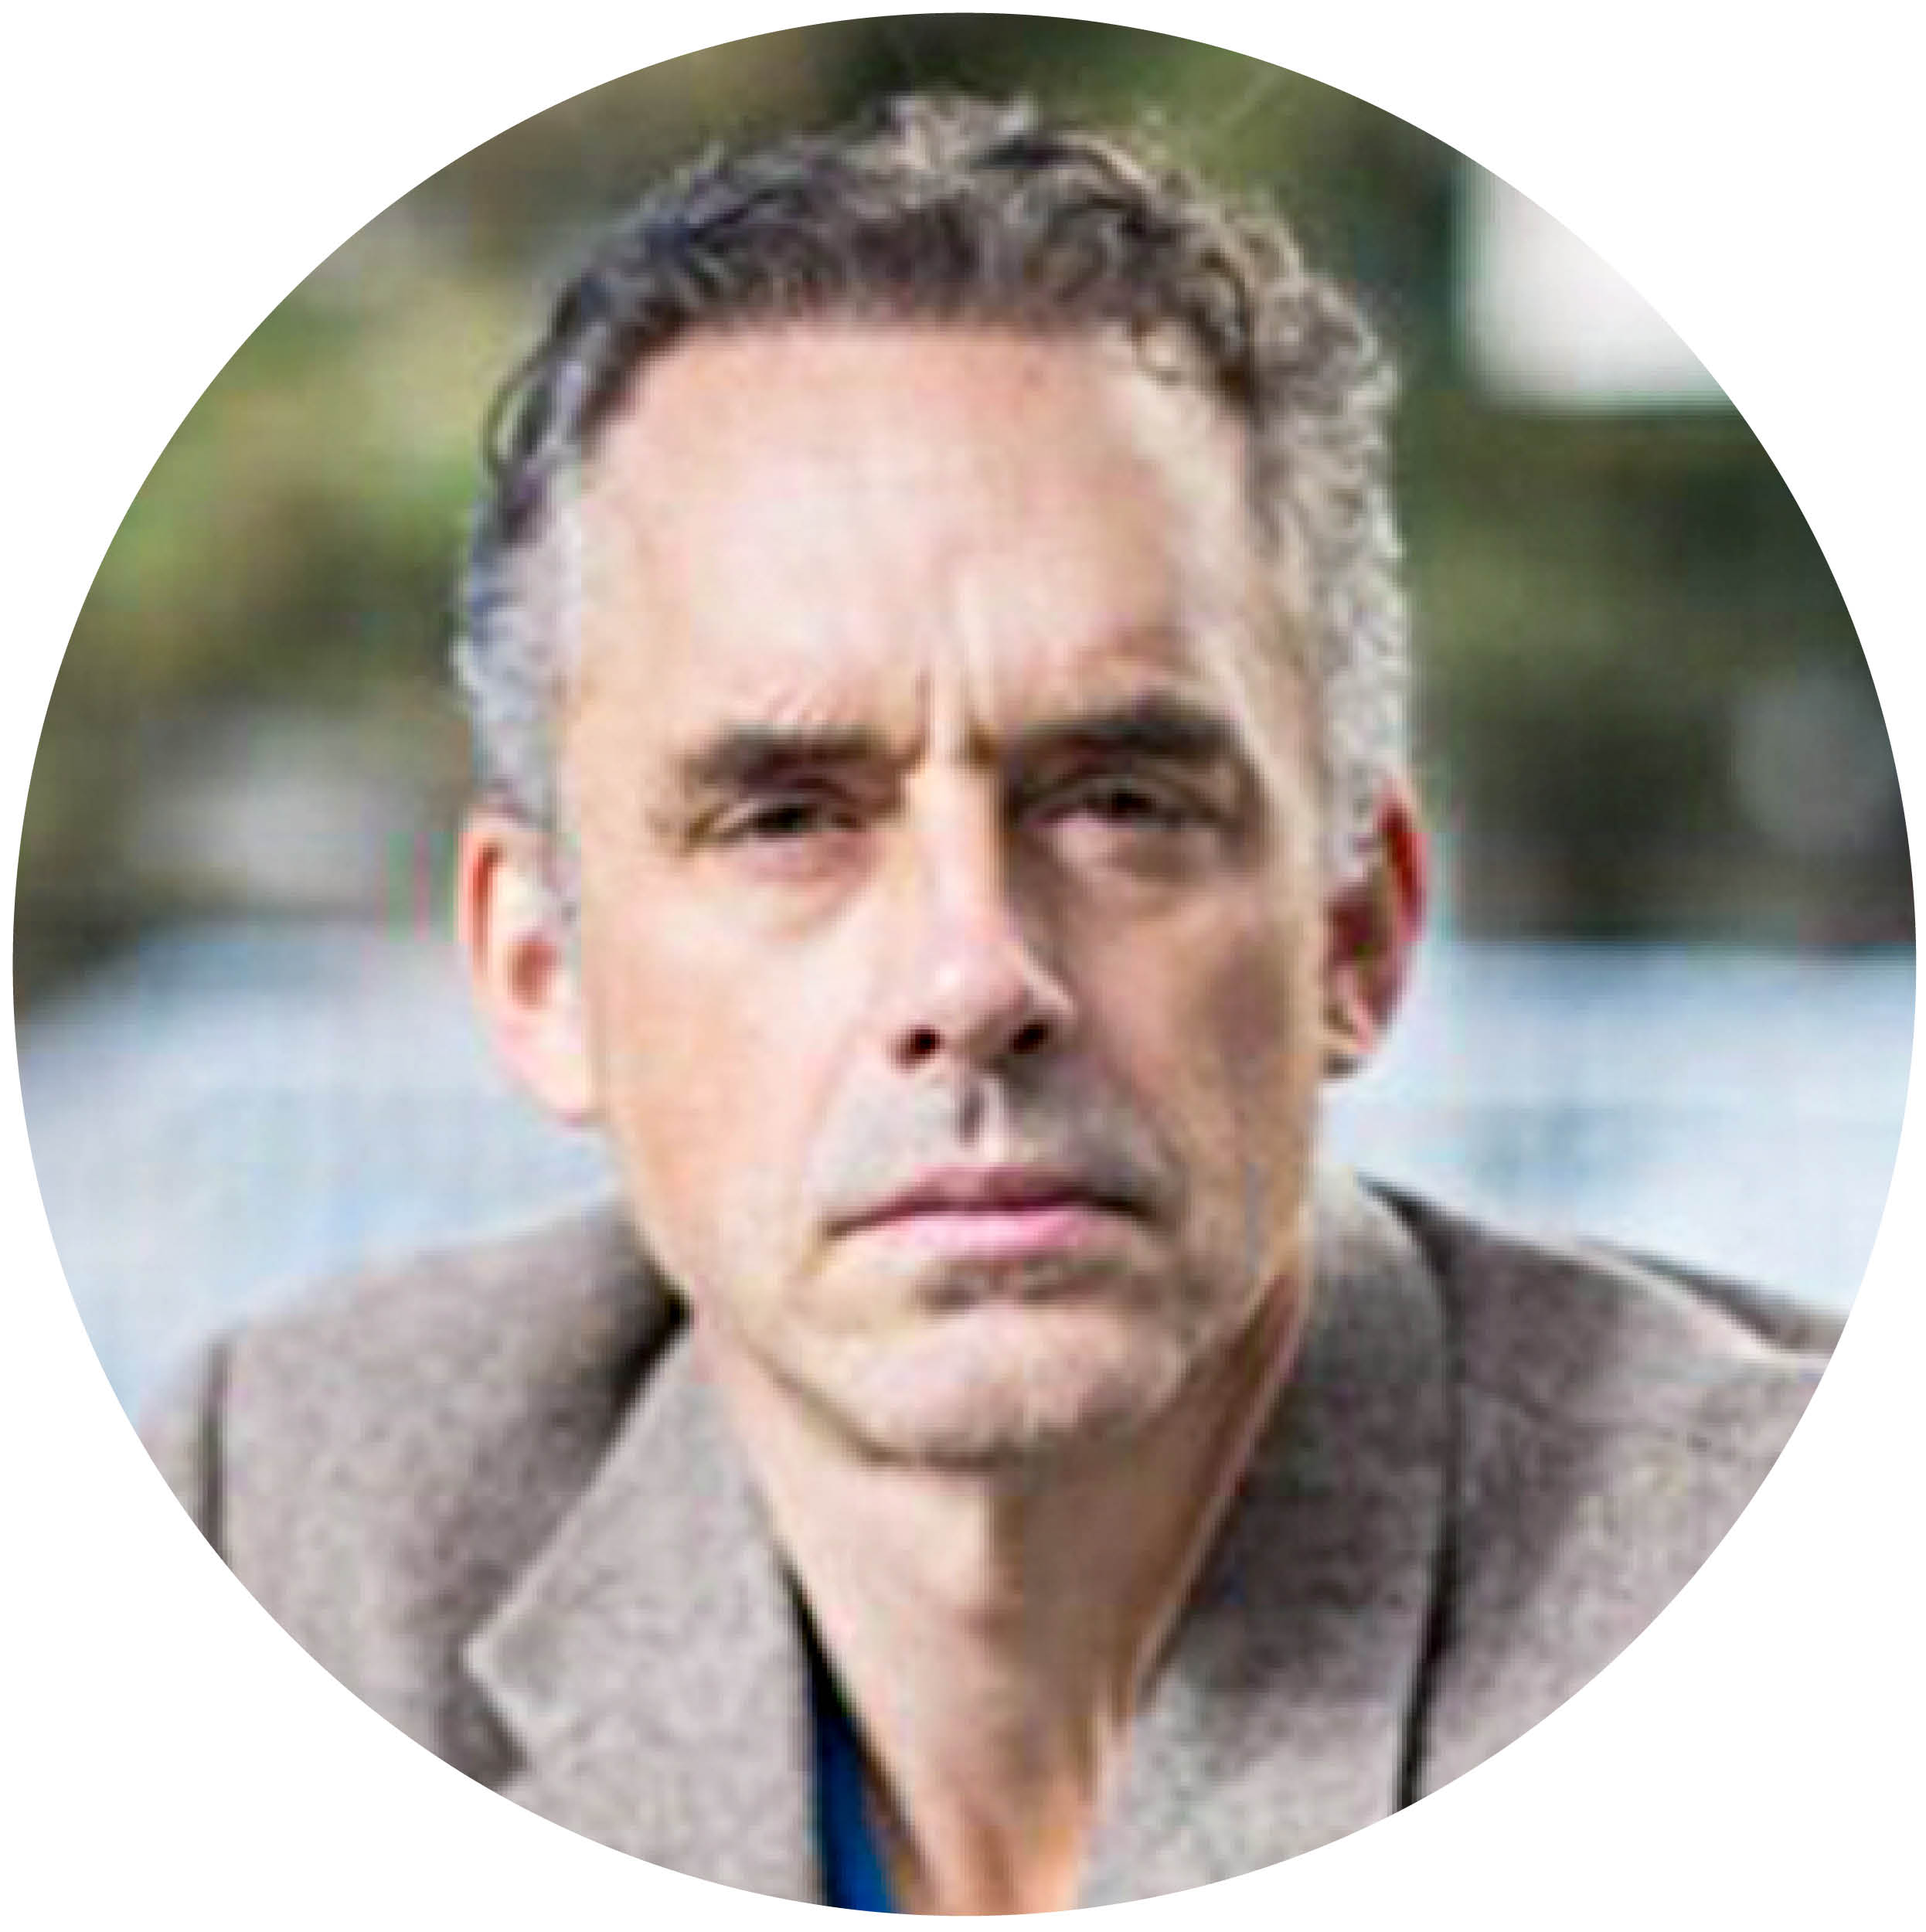 Jordan Peterson, an expert on communism and its influence on the West.